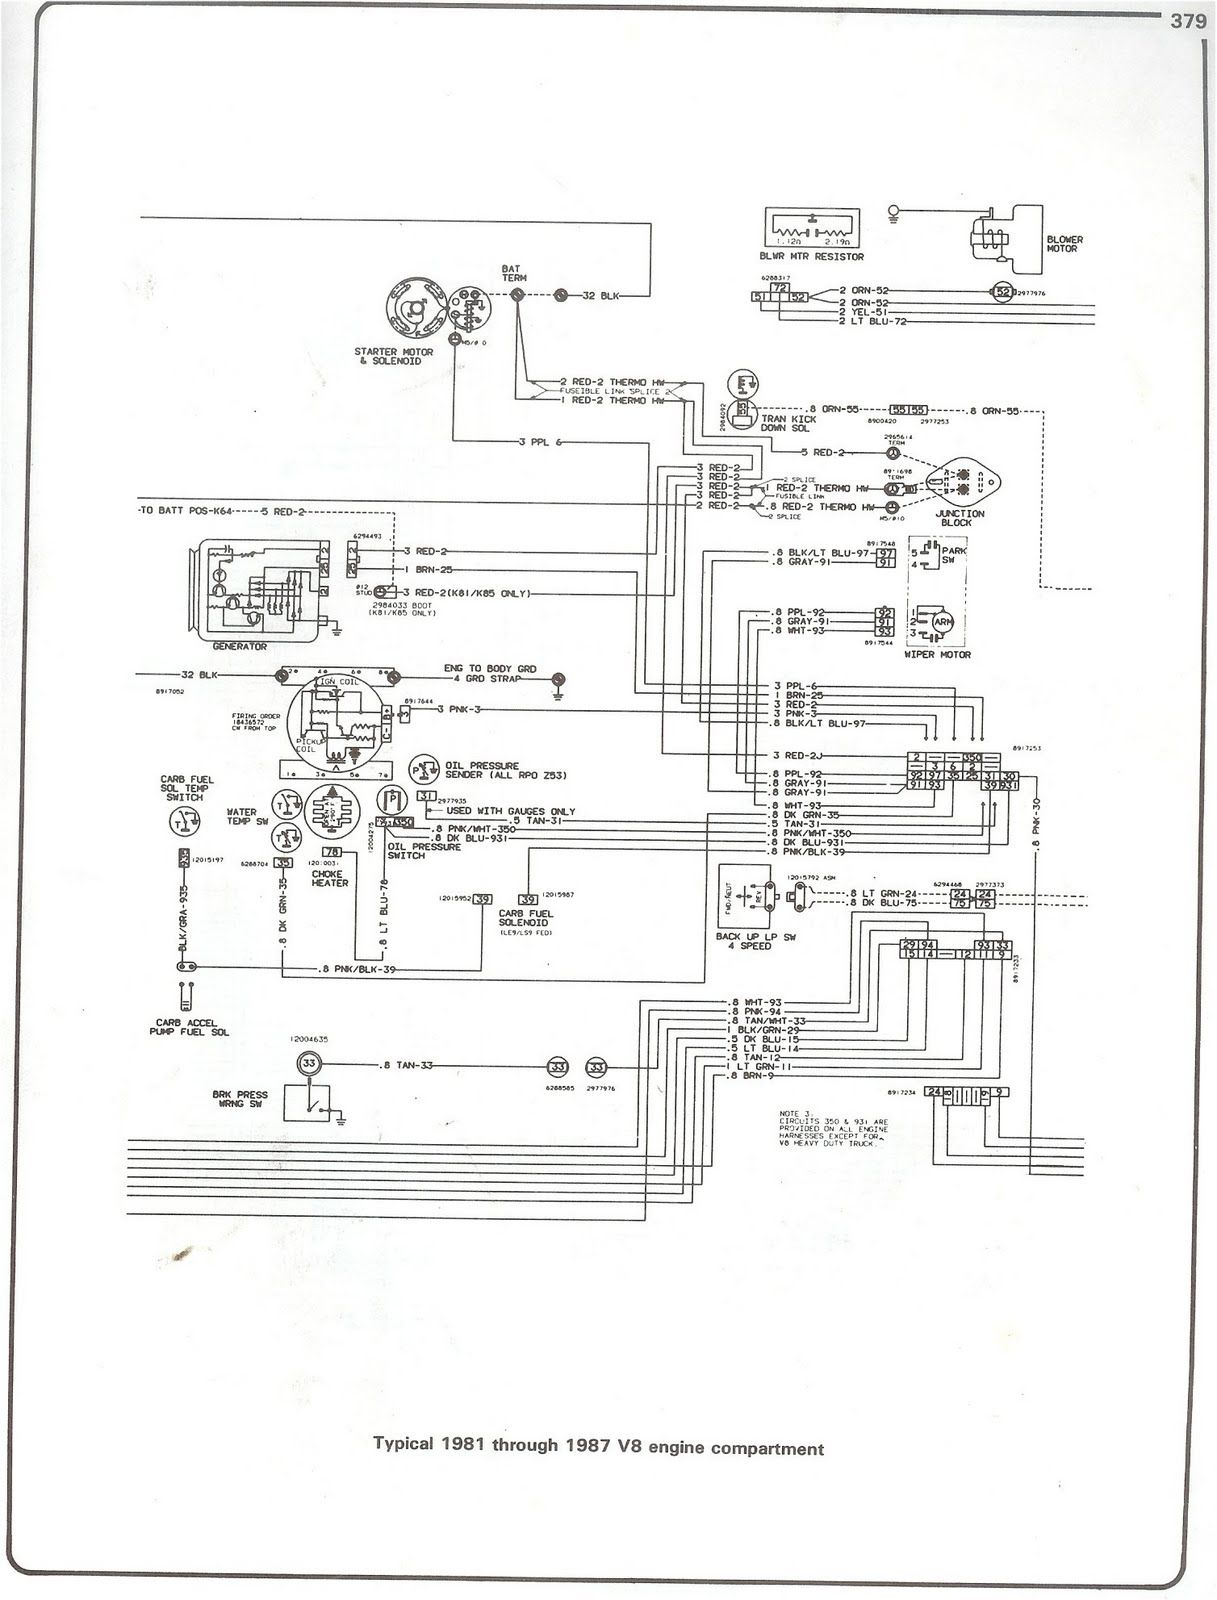 This Is Engine Compartment Wiring Diagram For 1981 Trough 1987 Chevrolet V8 Truck Description From Autowiringdiagra Chevy Trucks 1979 Chevy Truck Truck Engine